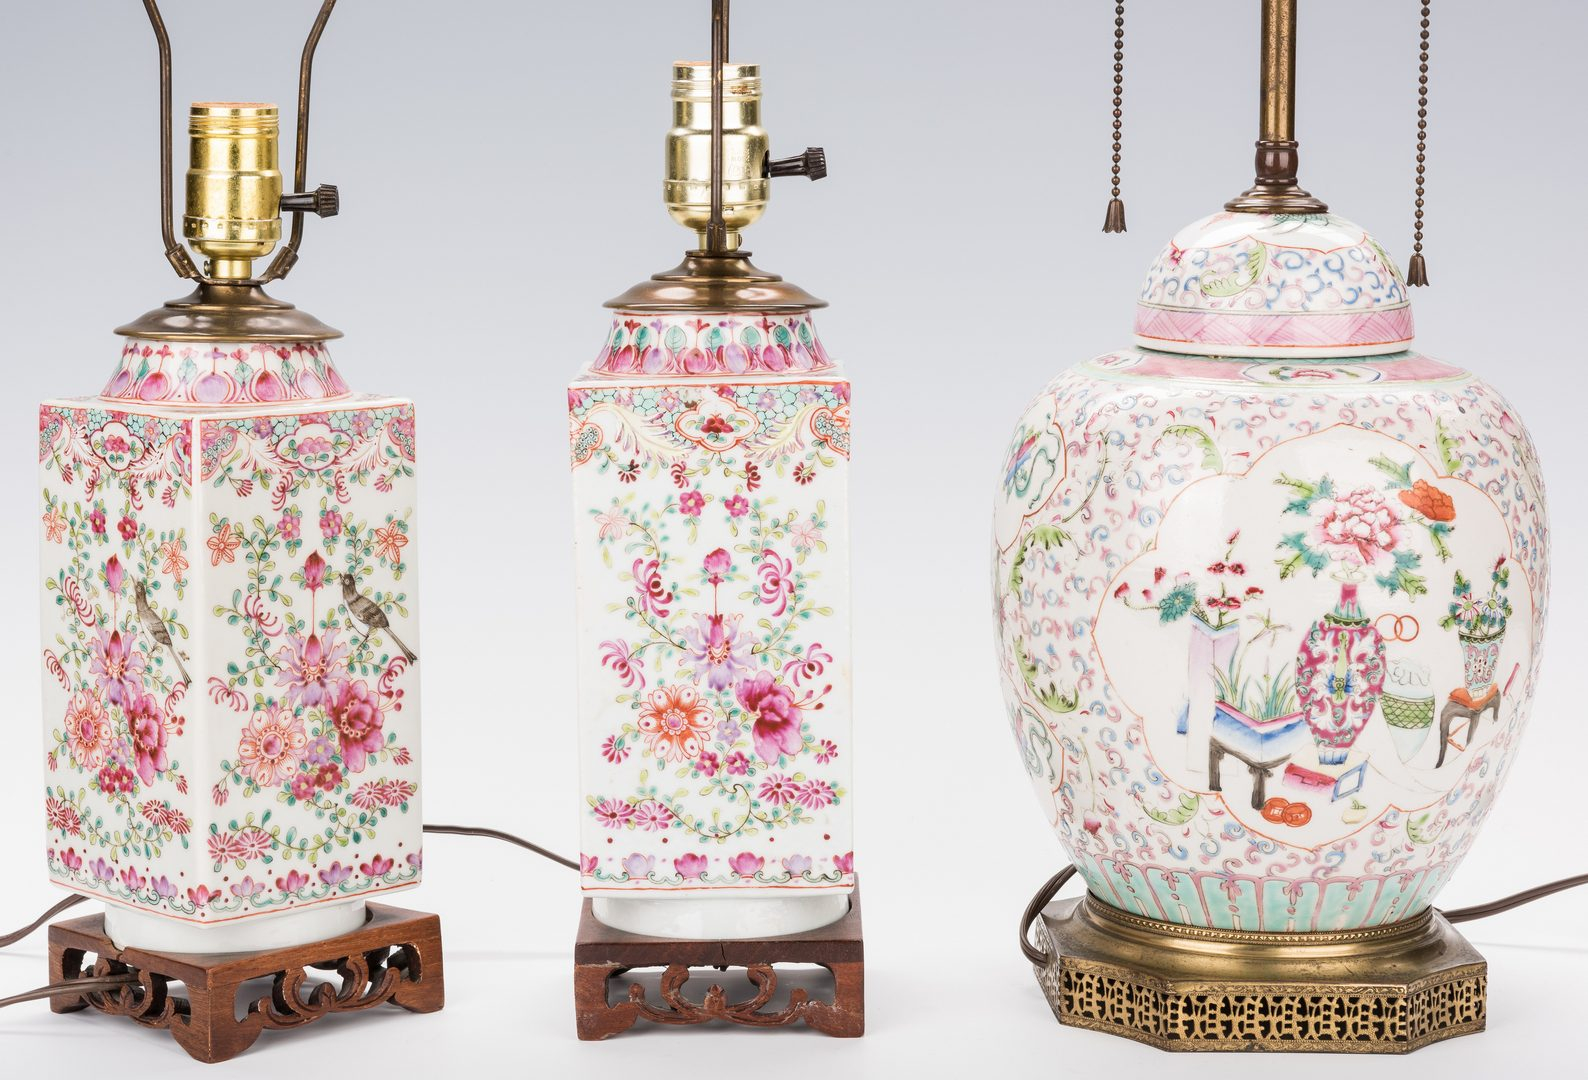 Lot 31: 3 Chinese Export Porcelain Lamps